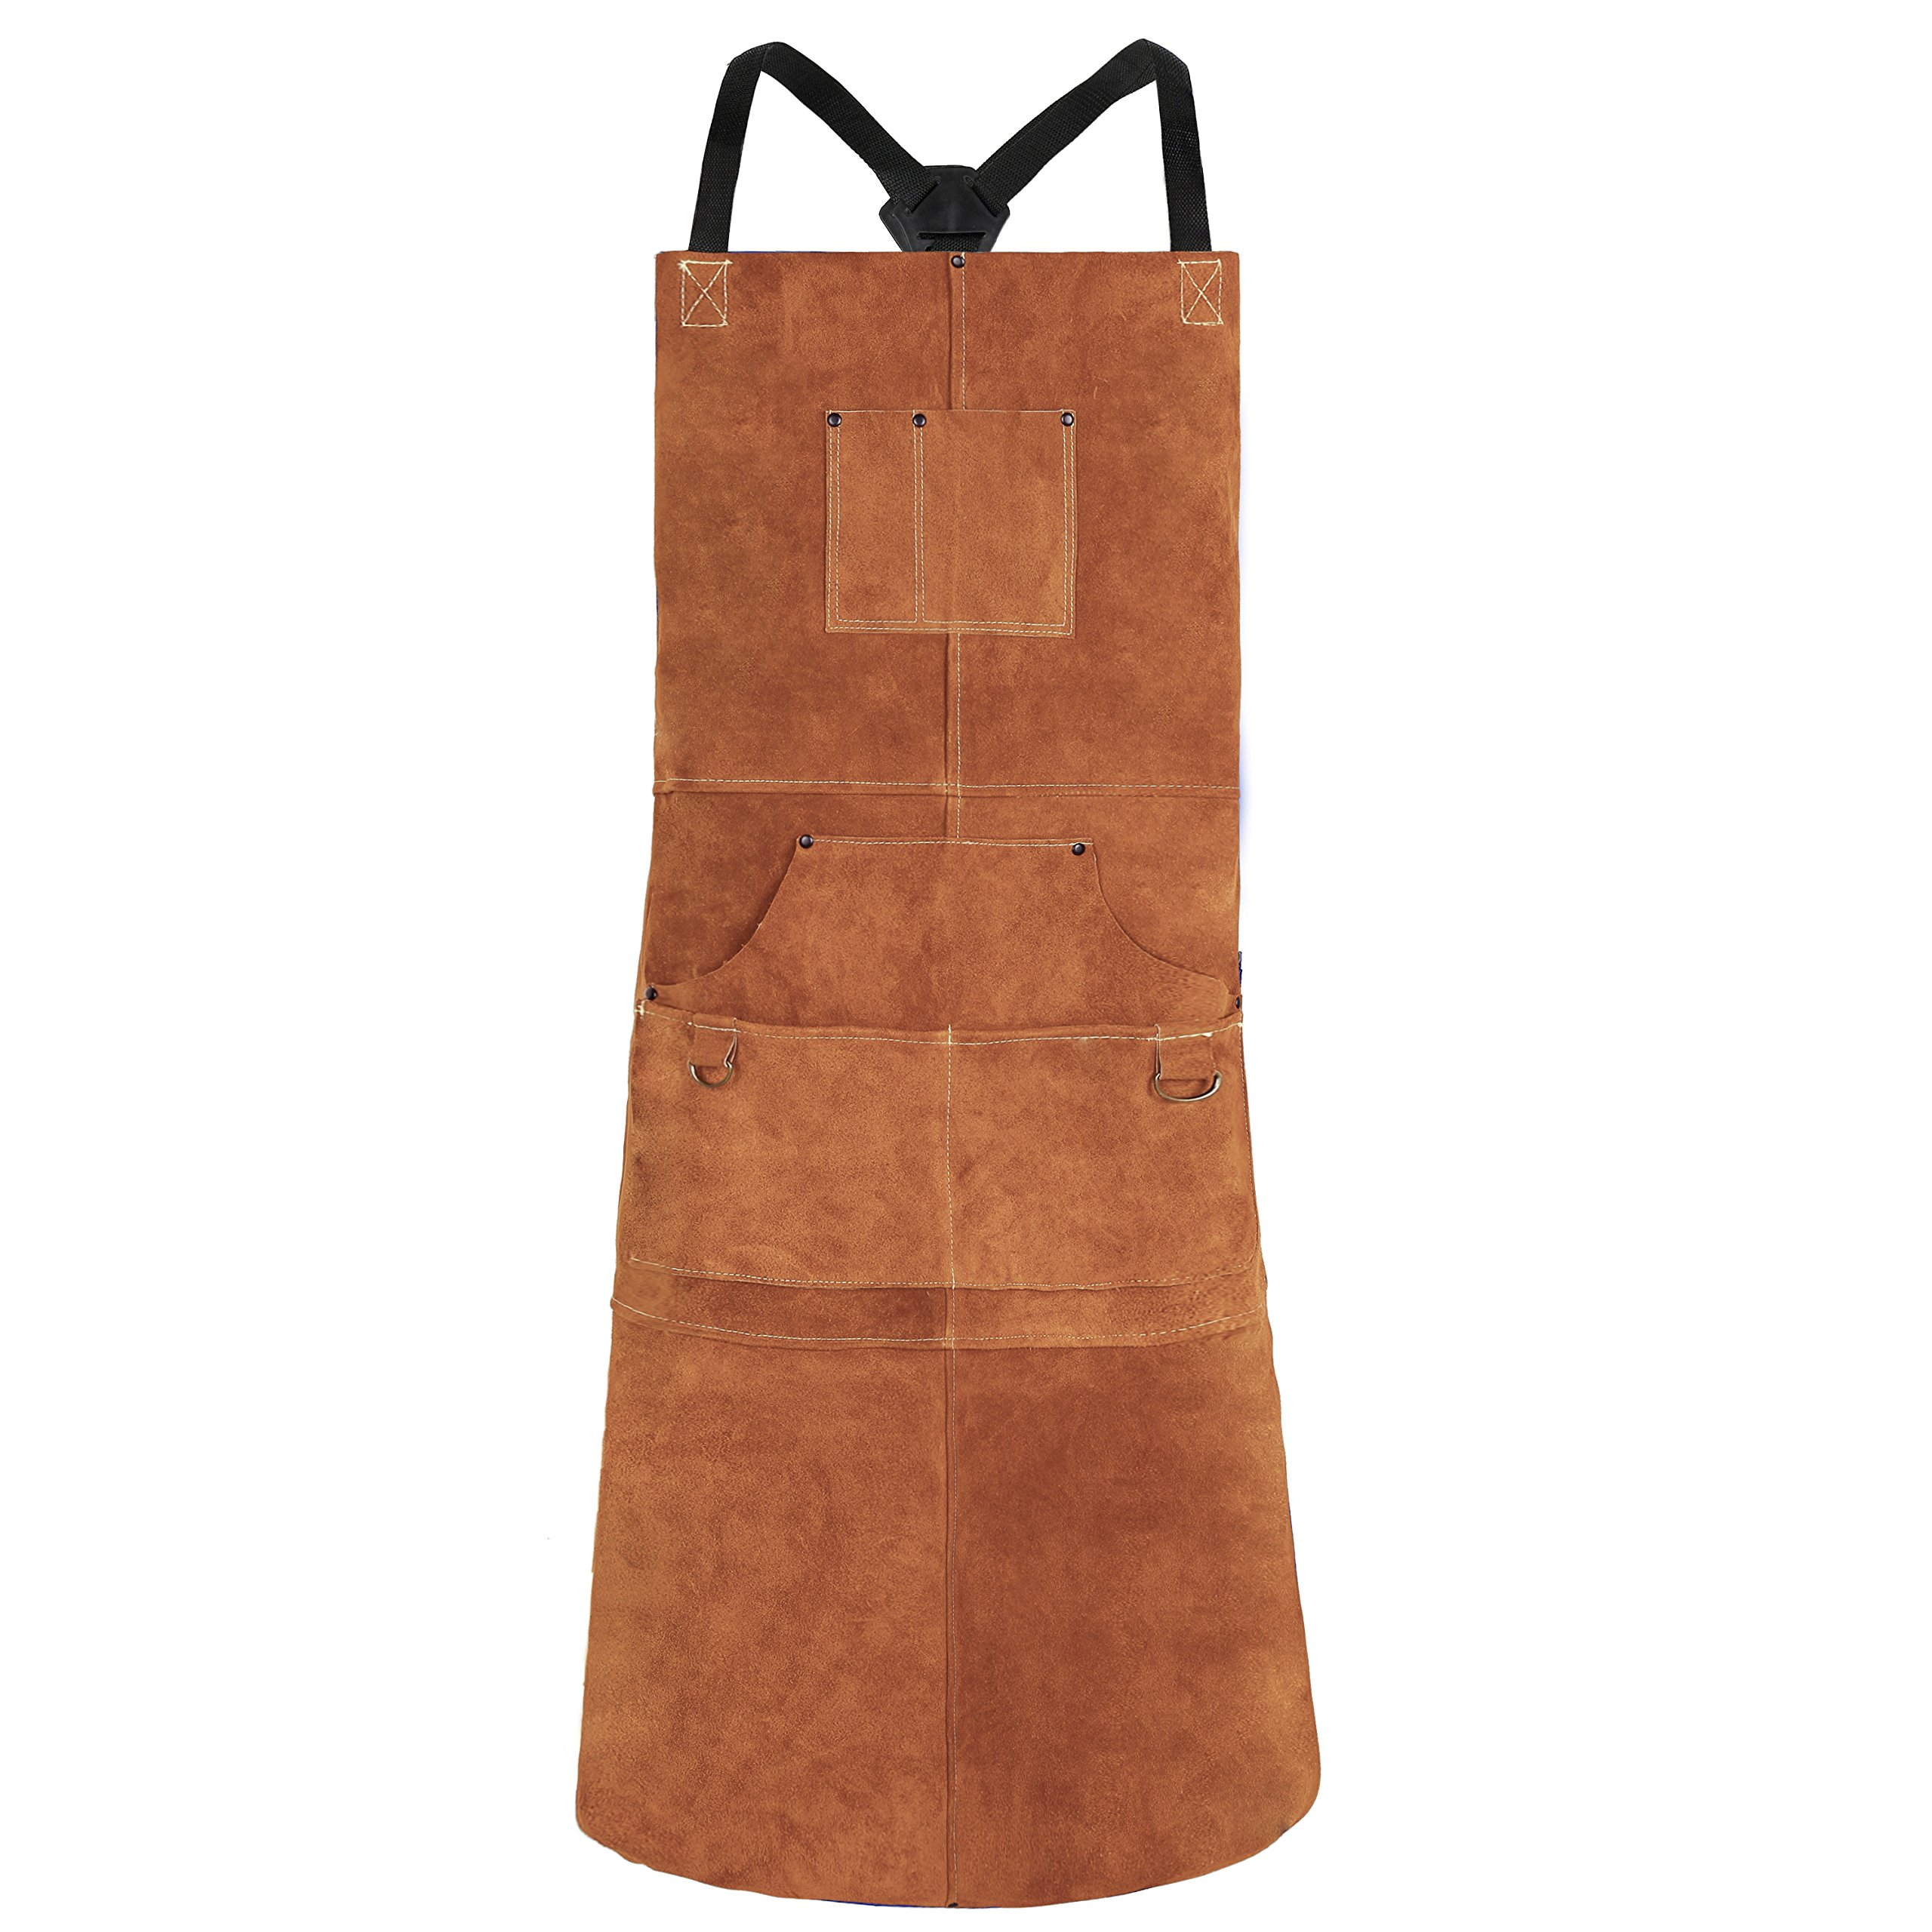 QeeLink Leather Welding Apron - Heat & Flame-Resistant Heavy Duty Work Apron with 6 Pockets, 42'' Extra Large & Cross Back Extra Long Strap, Adjustable M to XXXL Aprons for Men & Women (Brown)